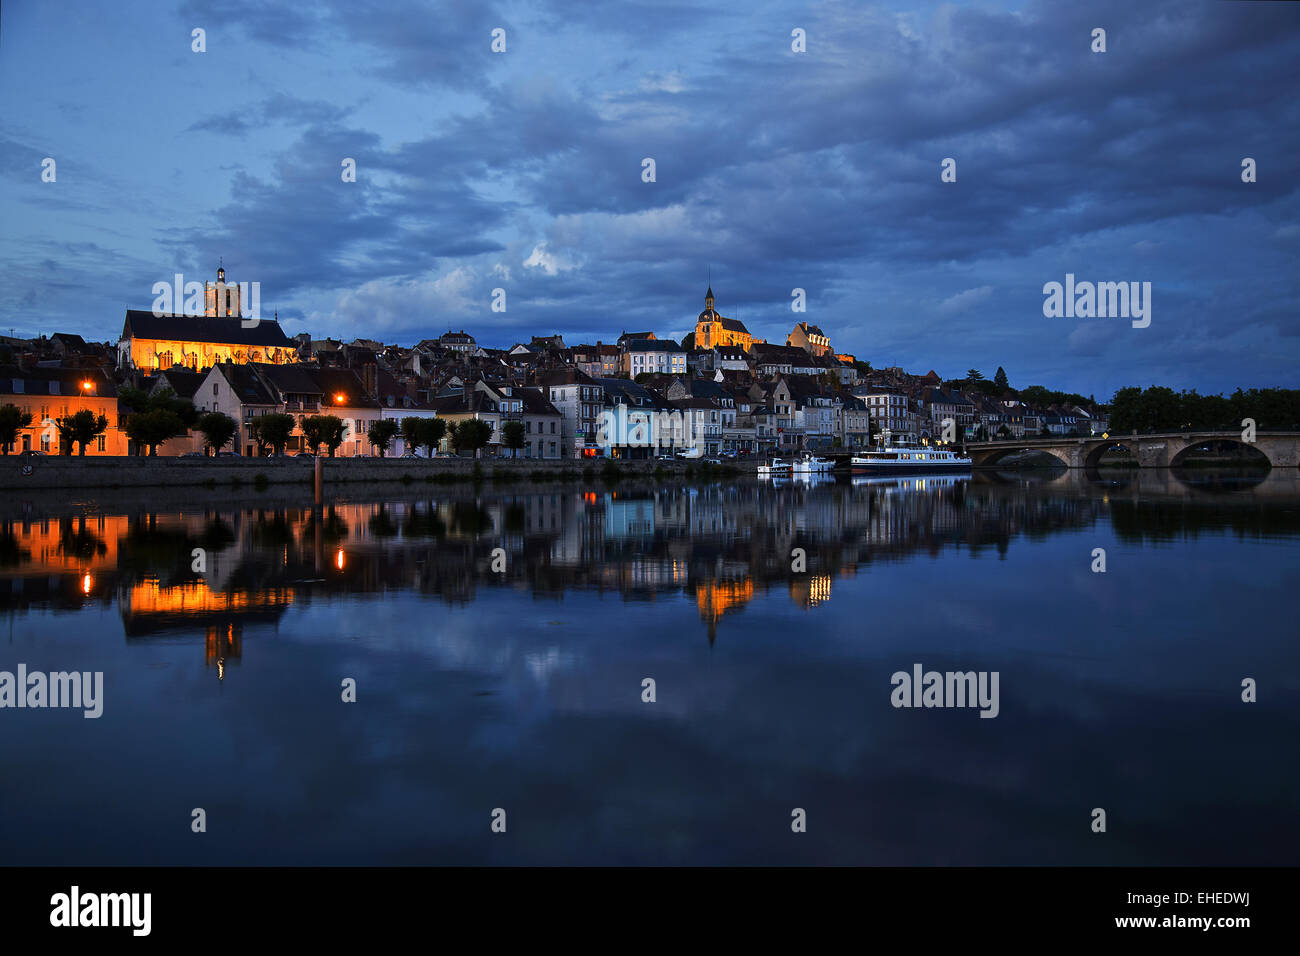 Joigny at the edge of Yonne river, France - Stock Image